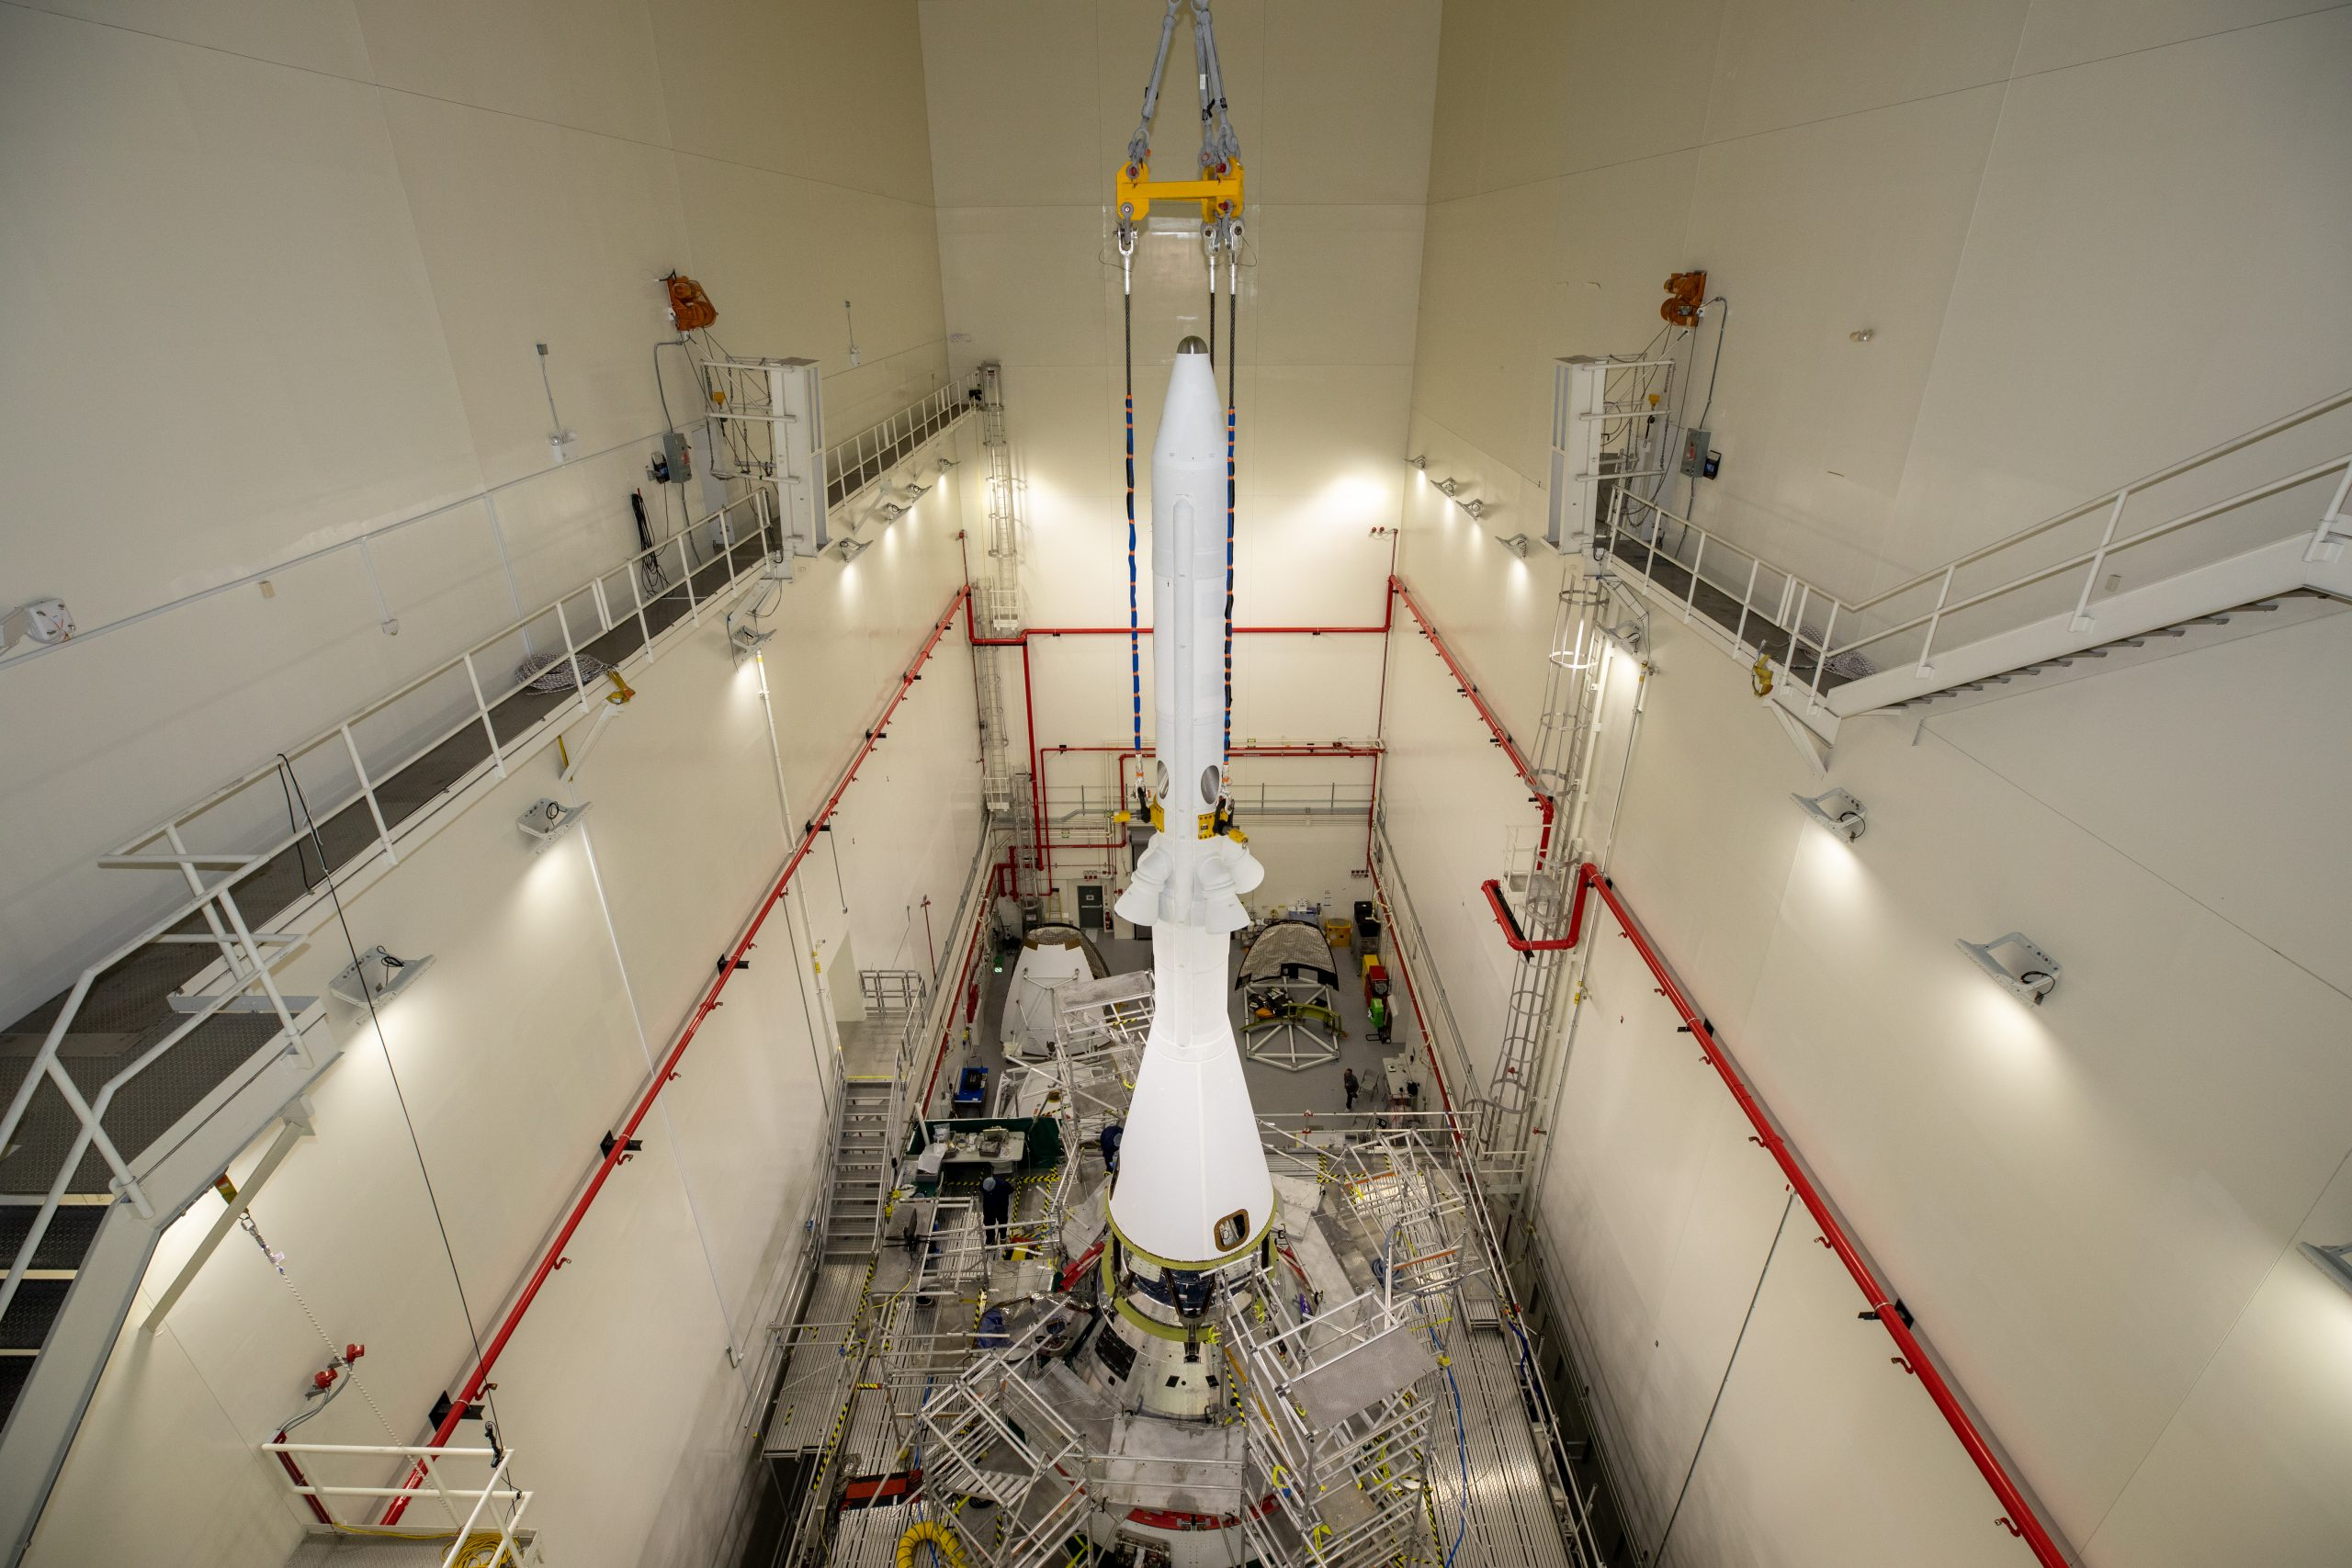 Teams with NASA's Exploration Ground Systems (EGS) and contractor Jacobs integrated the launch abort system (LAS) with the Orion spacecraft inside the Launch Abort System Facility at NASA's Kennedy Space Center in Florida on July 23, 2021.